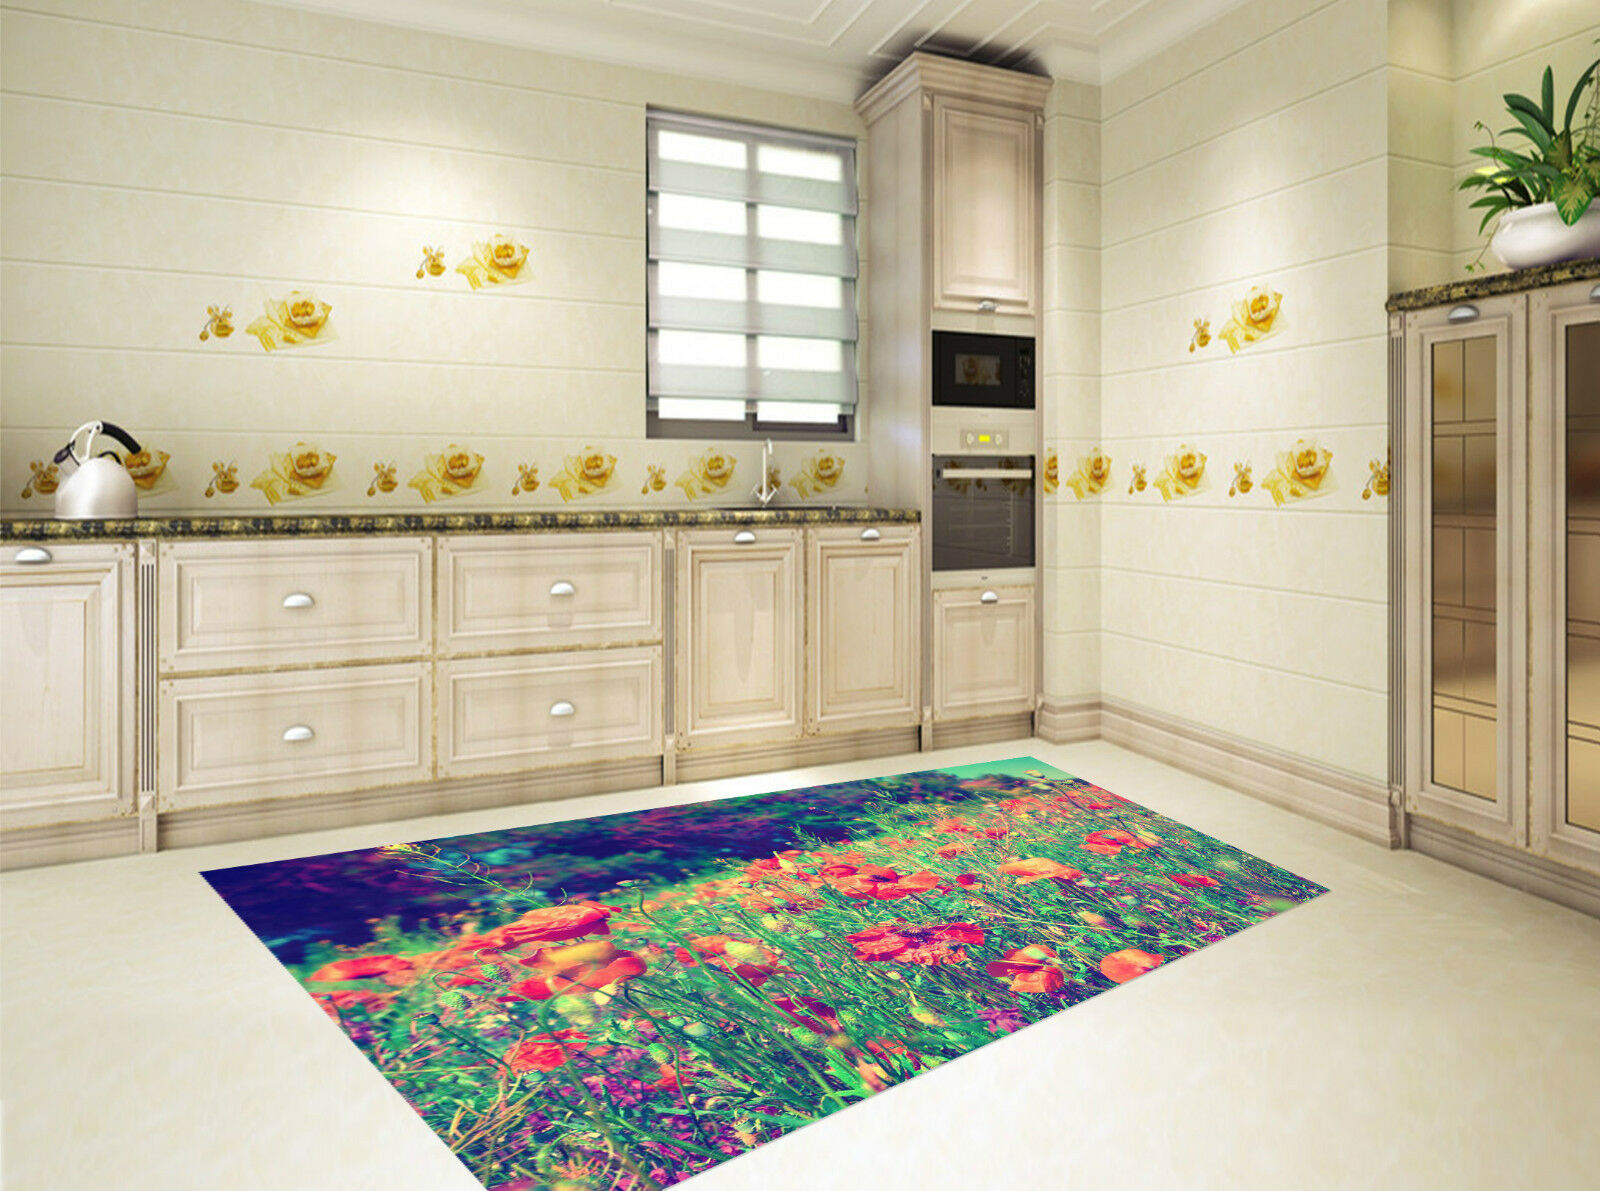 3D Flowers Weeds Kitchen Mat Floor Murals Wall Print Wall Deco AJ WALLPAPER CA